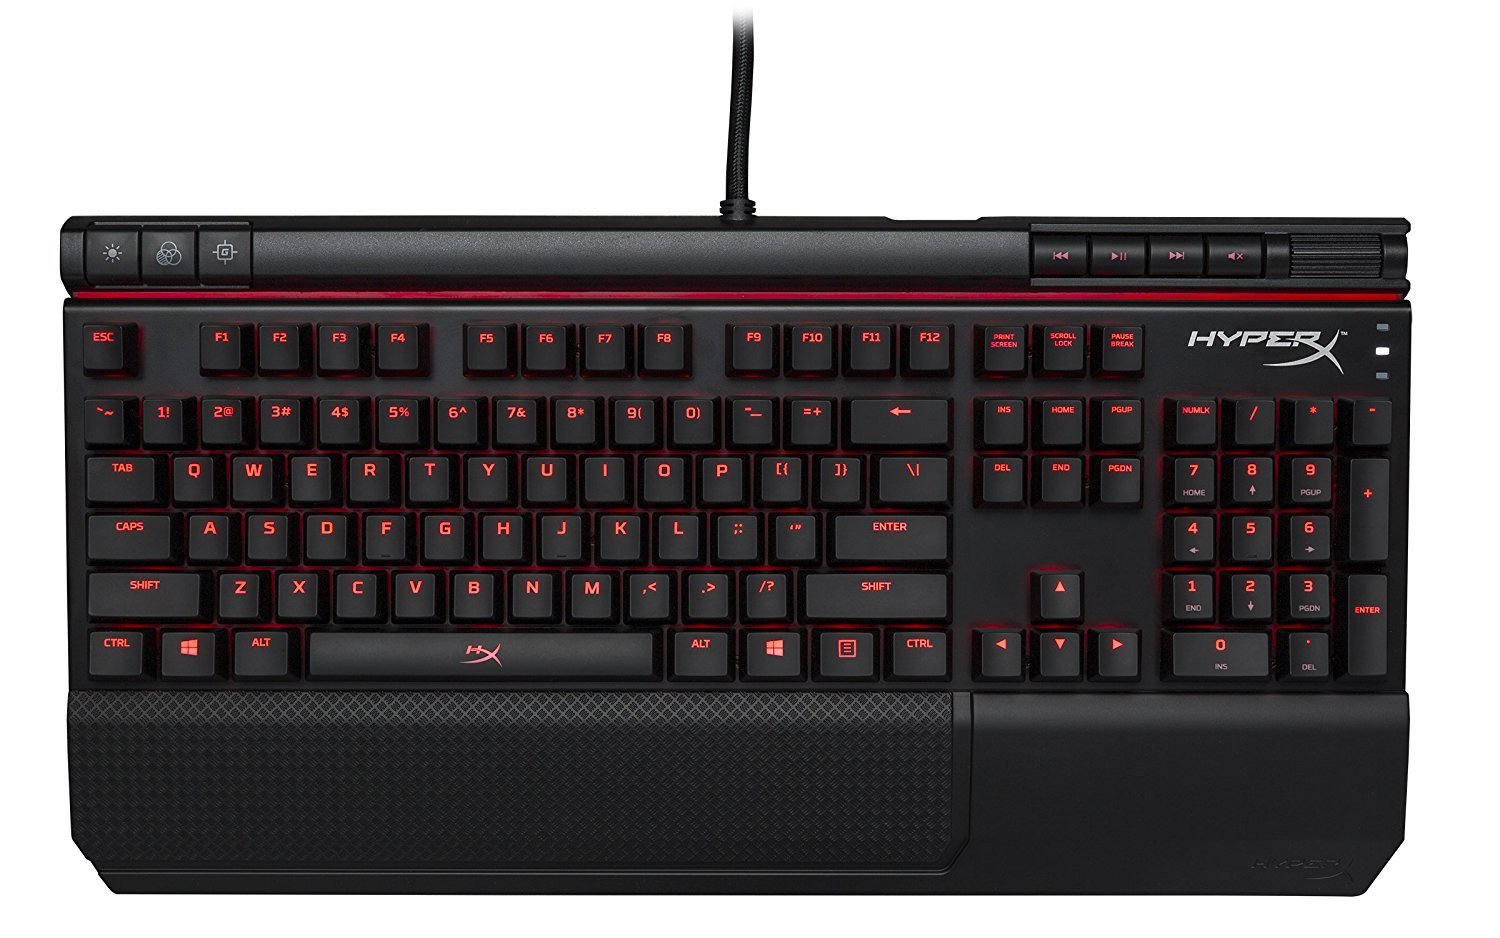 Image showing a gaming keyboard